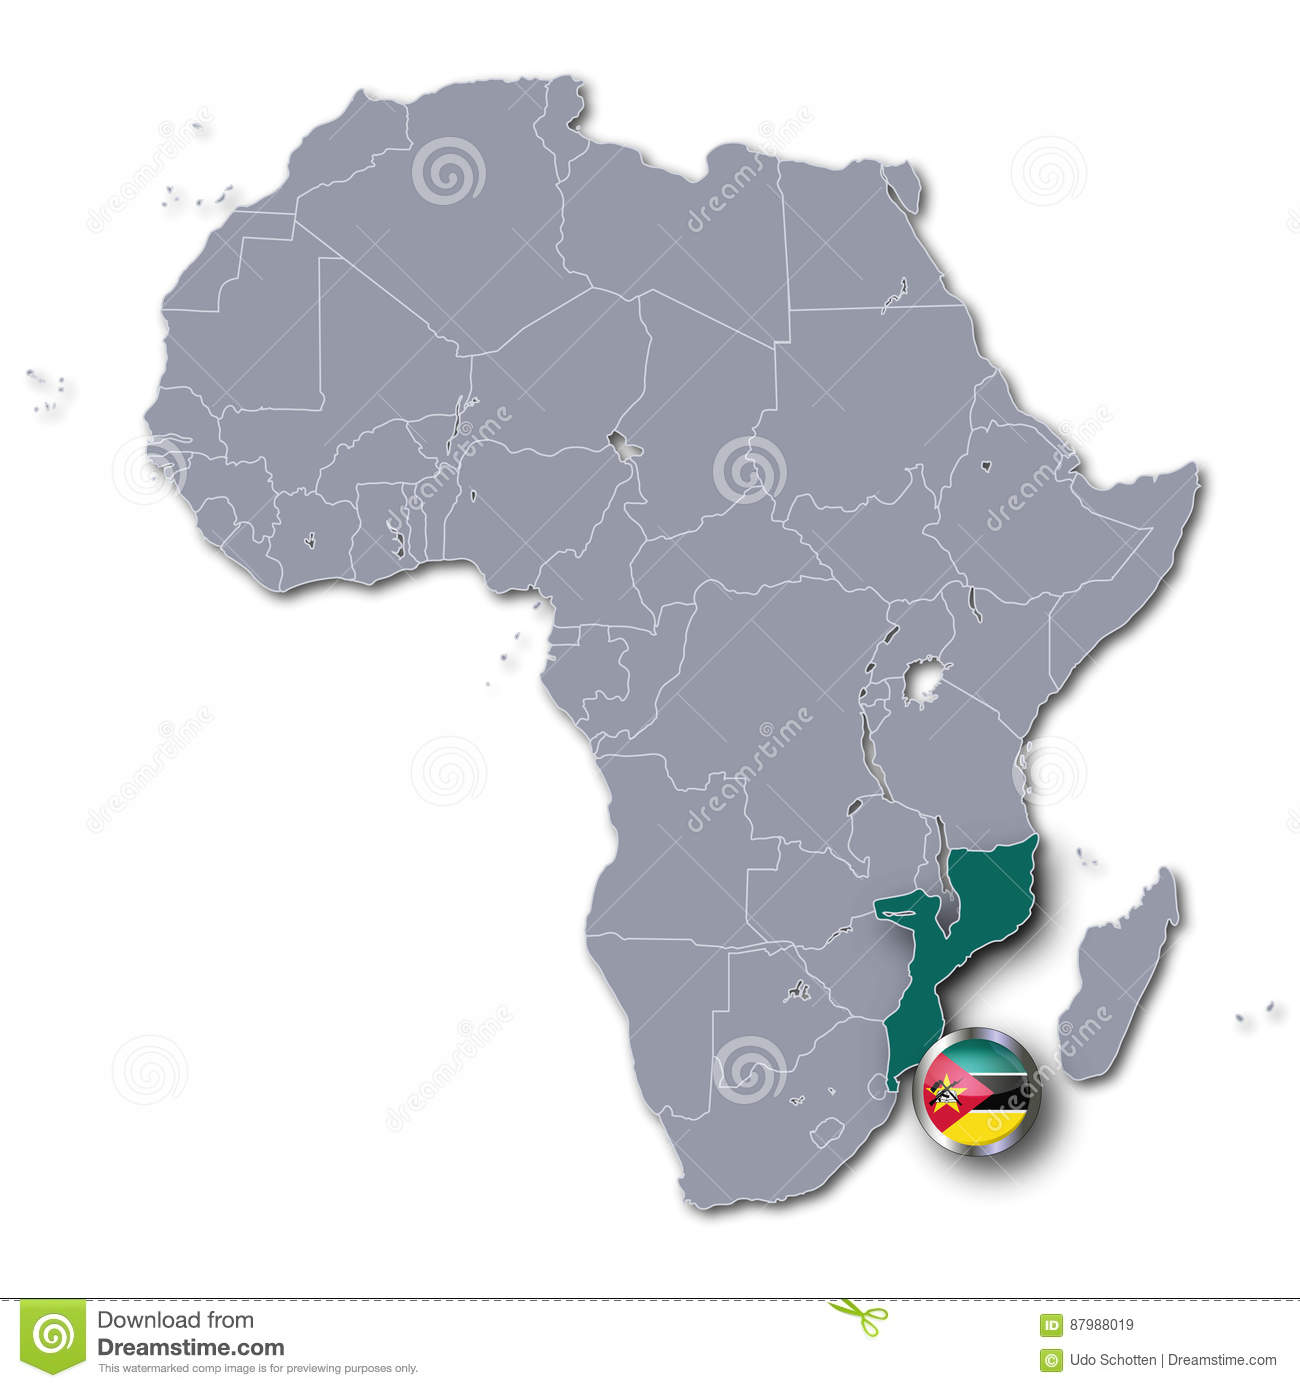 Africa map with mozambique stock illustration illustration of icon download africa map with mozambique stock illustration illustration of icon 87988019 gumiabroncs Images